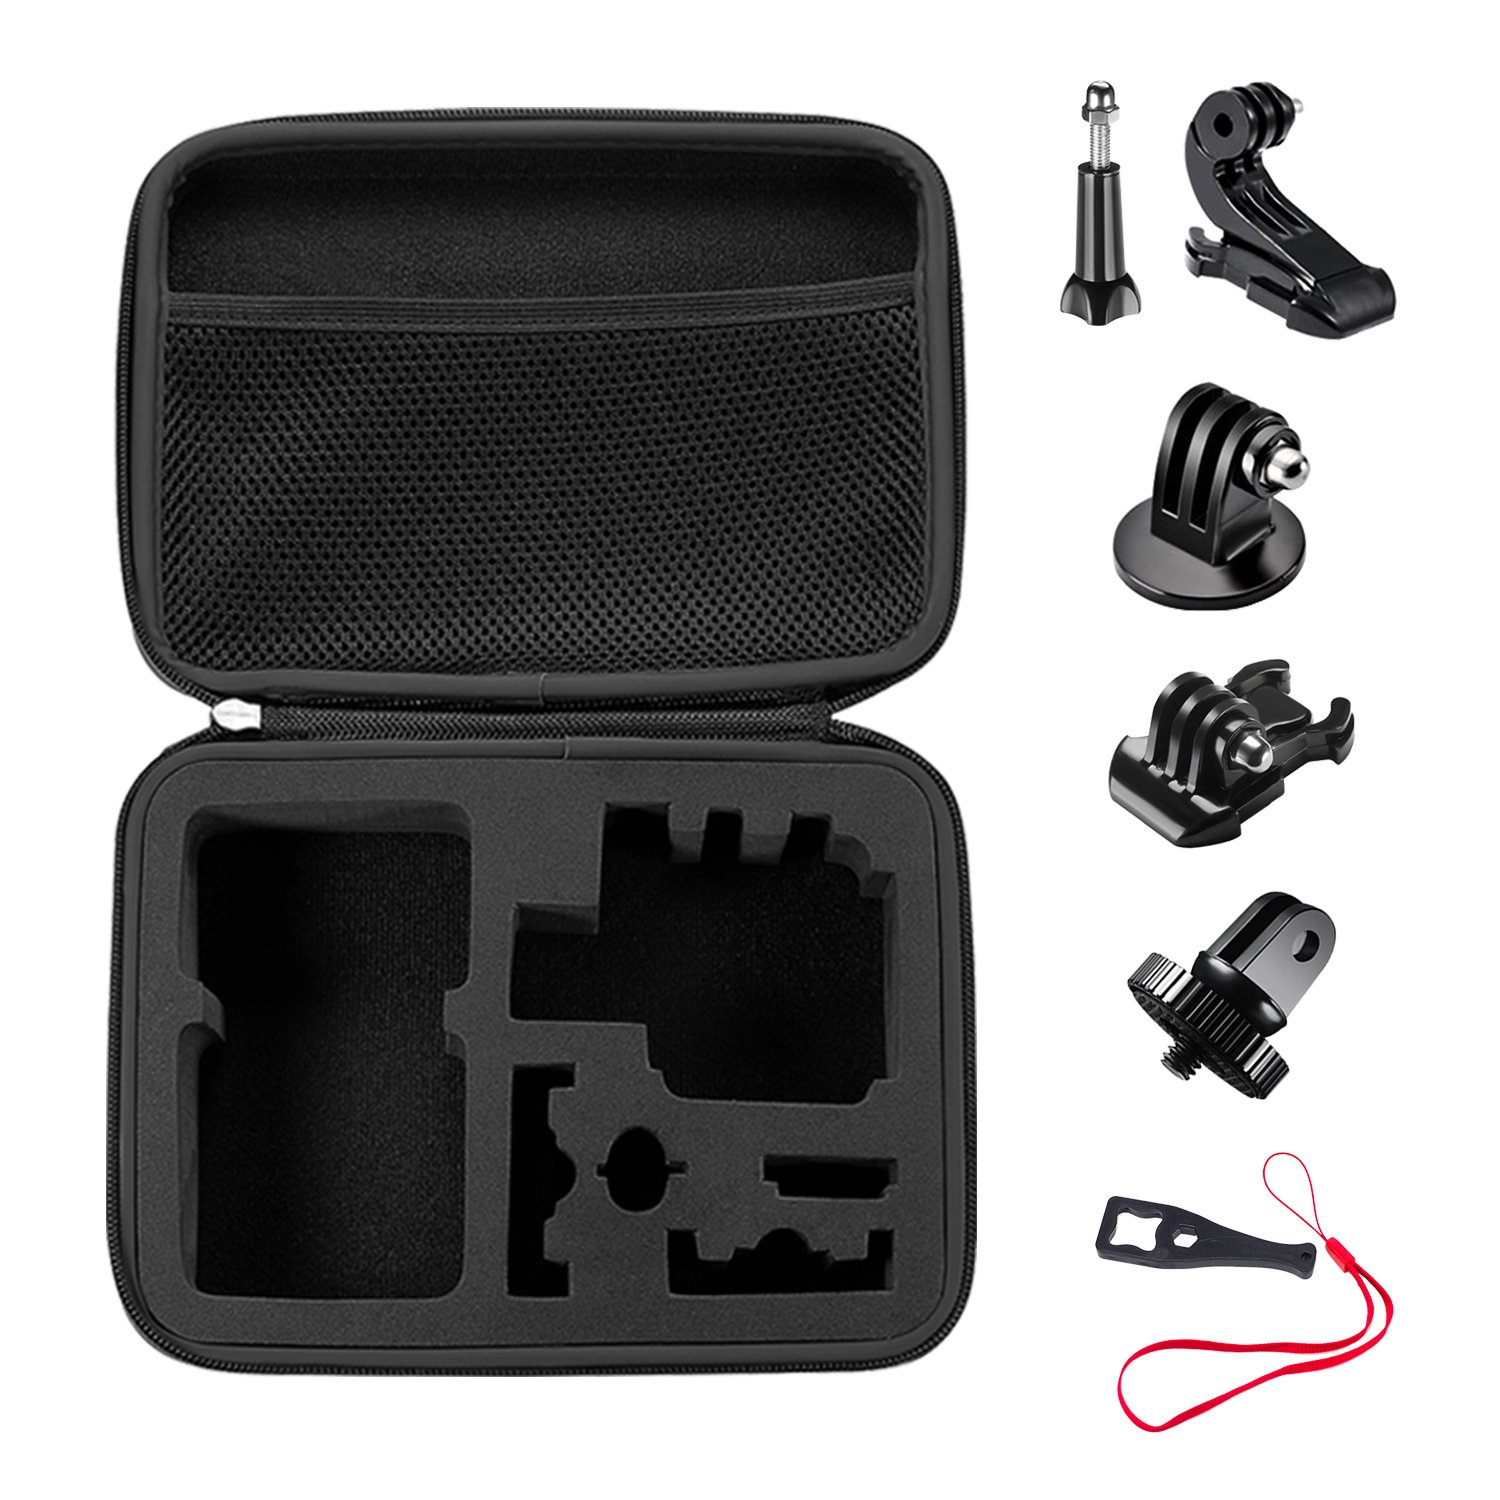 Bestter 13-in-1 Mount Accessories Kit for GoPro Hero 5 Session/Hero Session/Hero 6 5 SJCAM DBPOWER VicTsing AKASO Rollei Lightdow Sony Sports DV and More - (6)J-Hook Buckle; (6)Thumb Screw; (1)Wrench 20181014